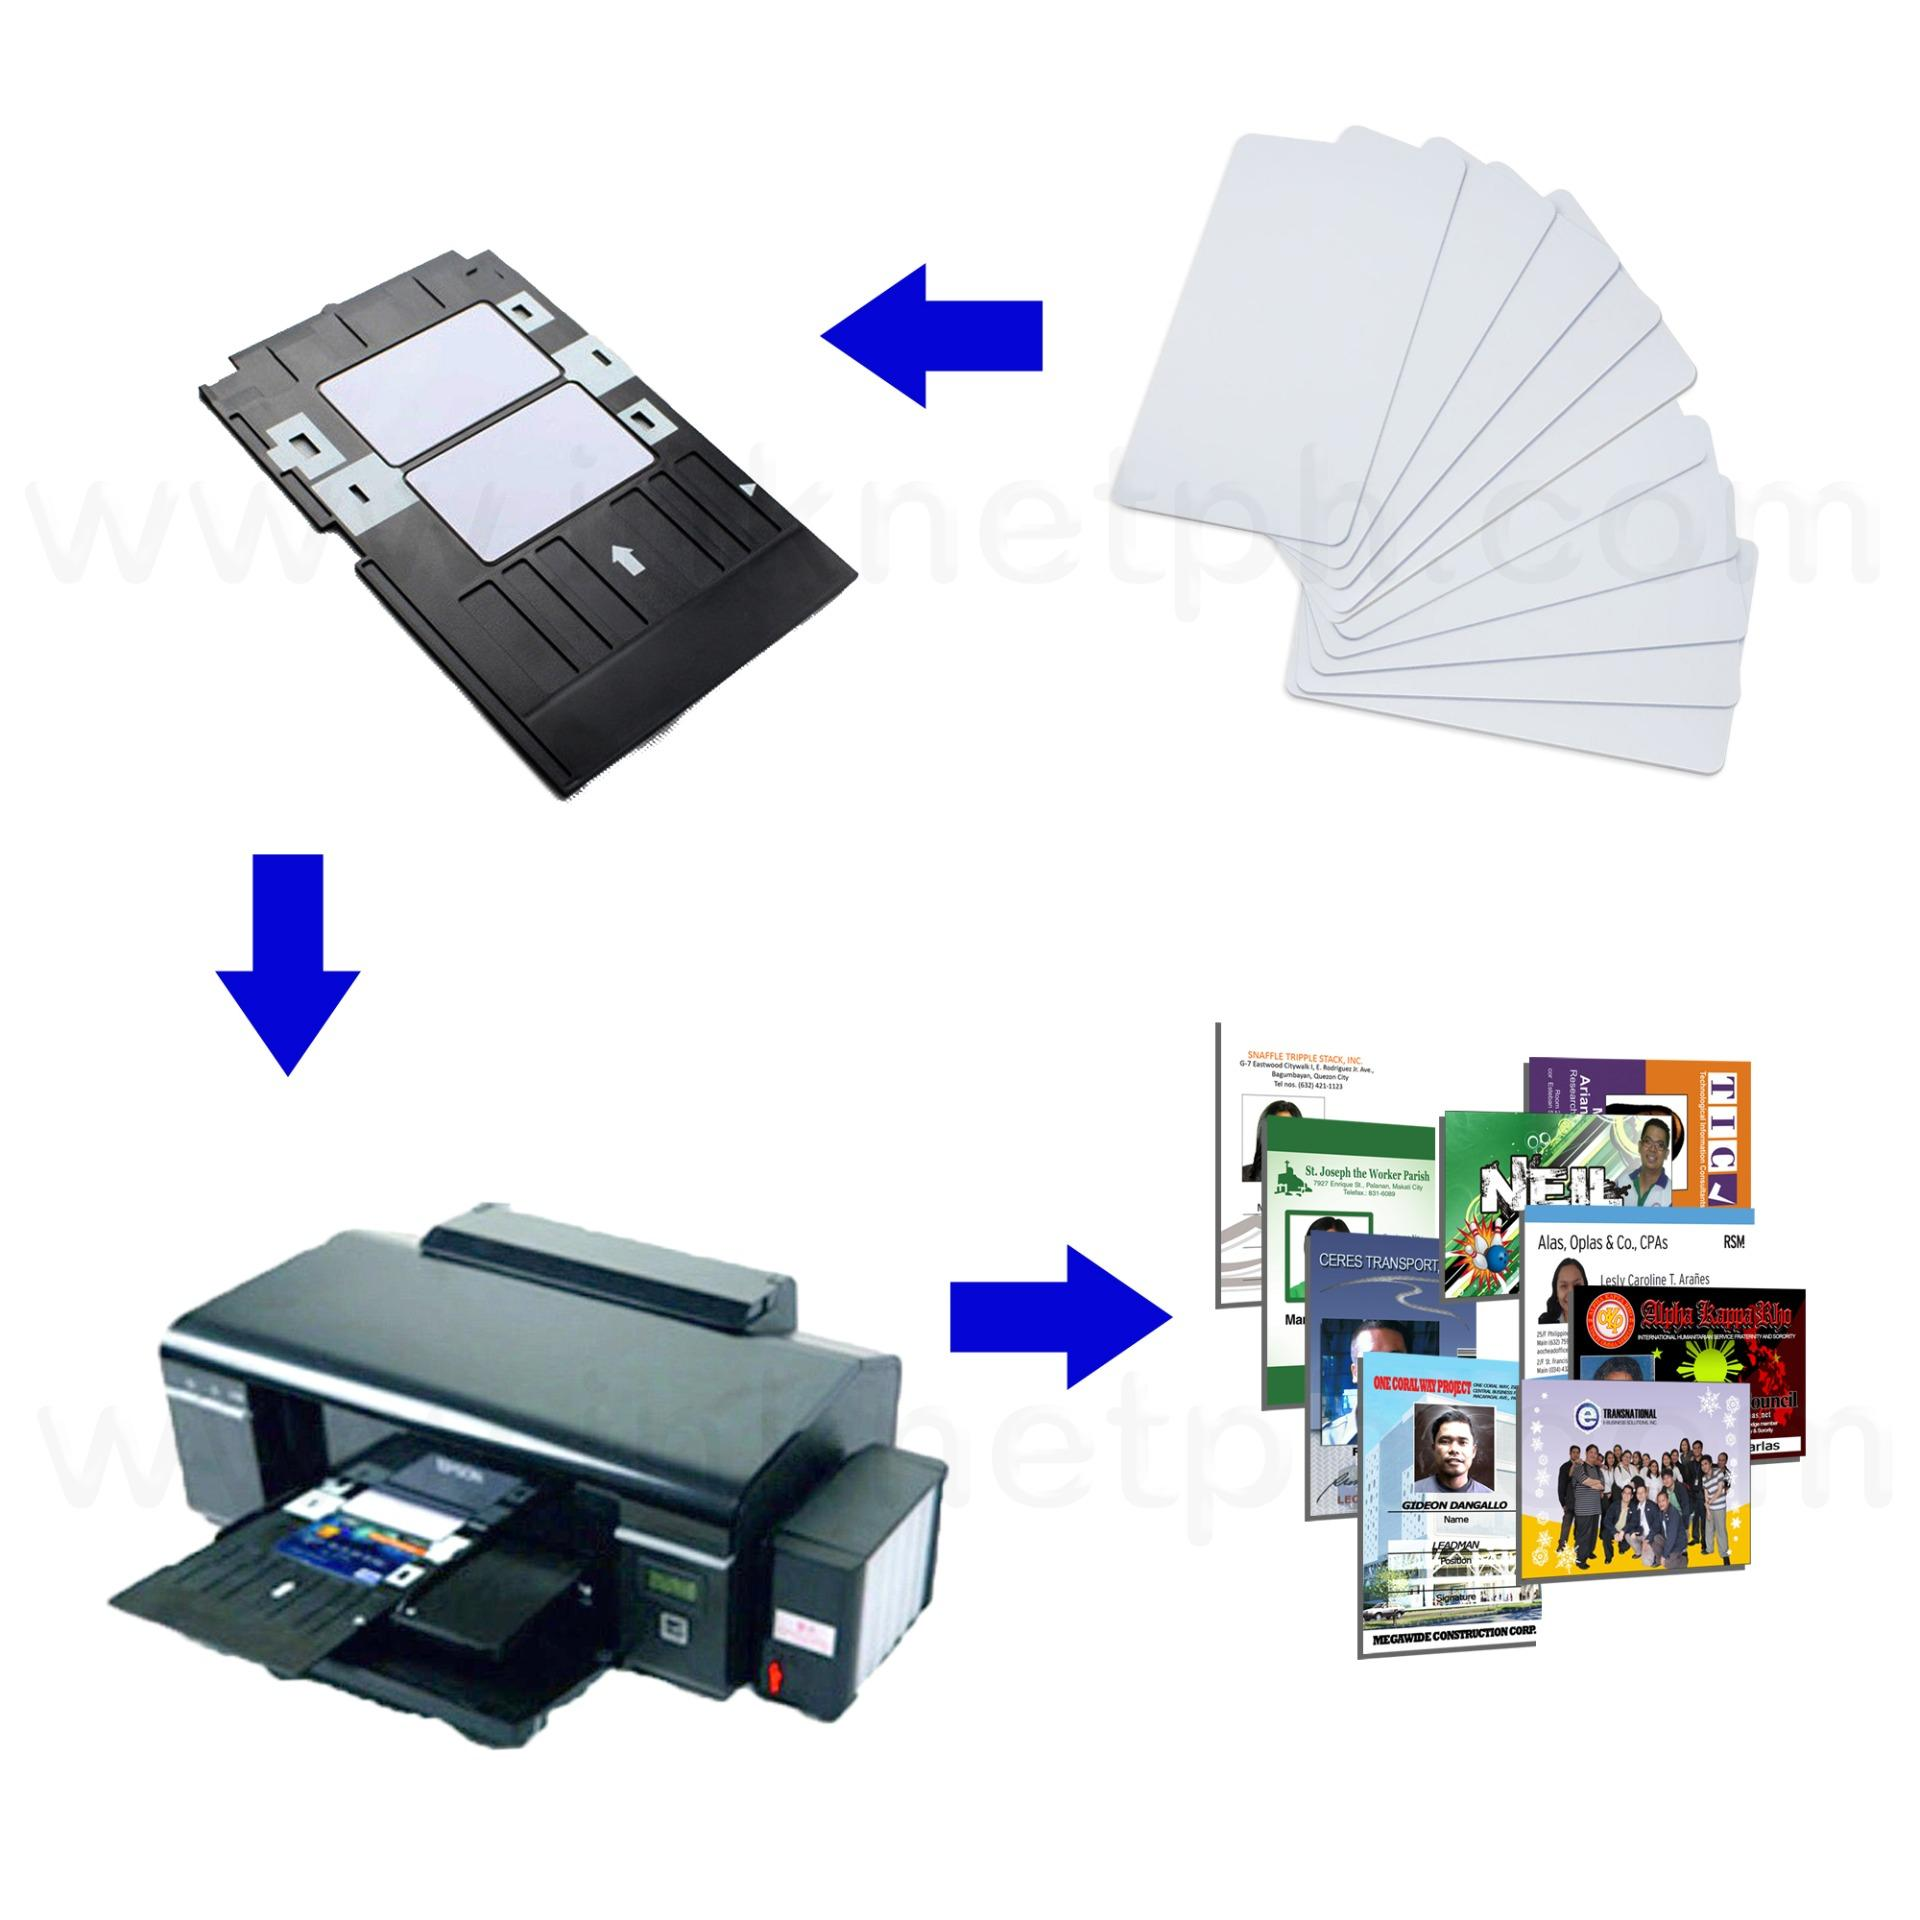 PVC Tray for Epson L805 for Printing of School Company Membership ID Cards